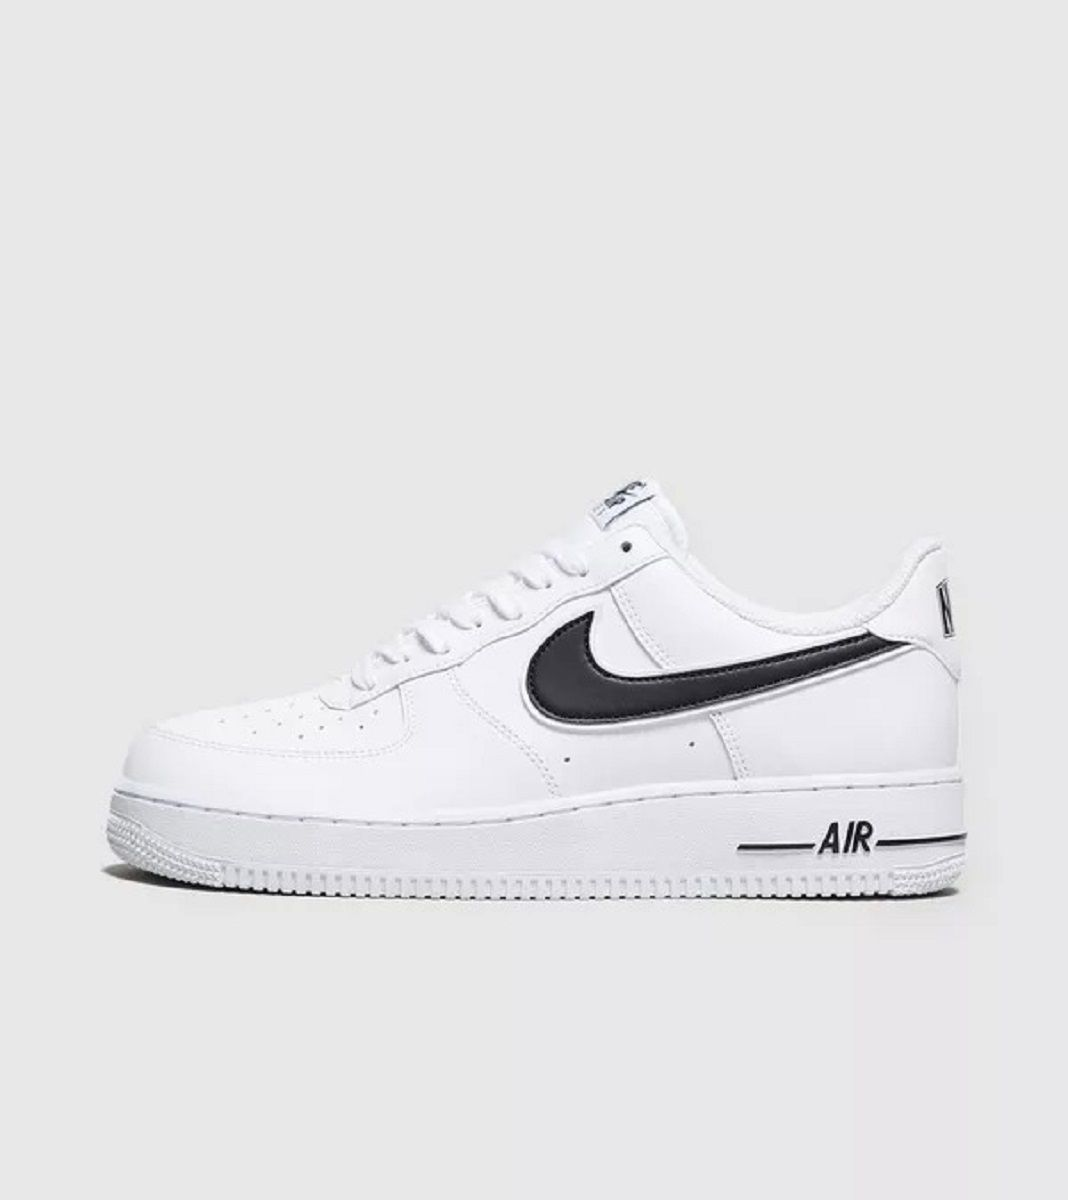 Nike Air Force 1 07 Low Essential White Black AO2423 101